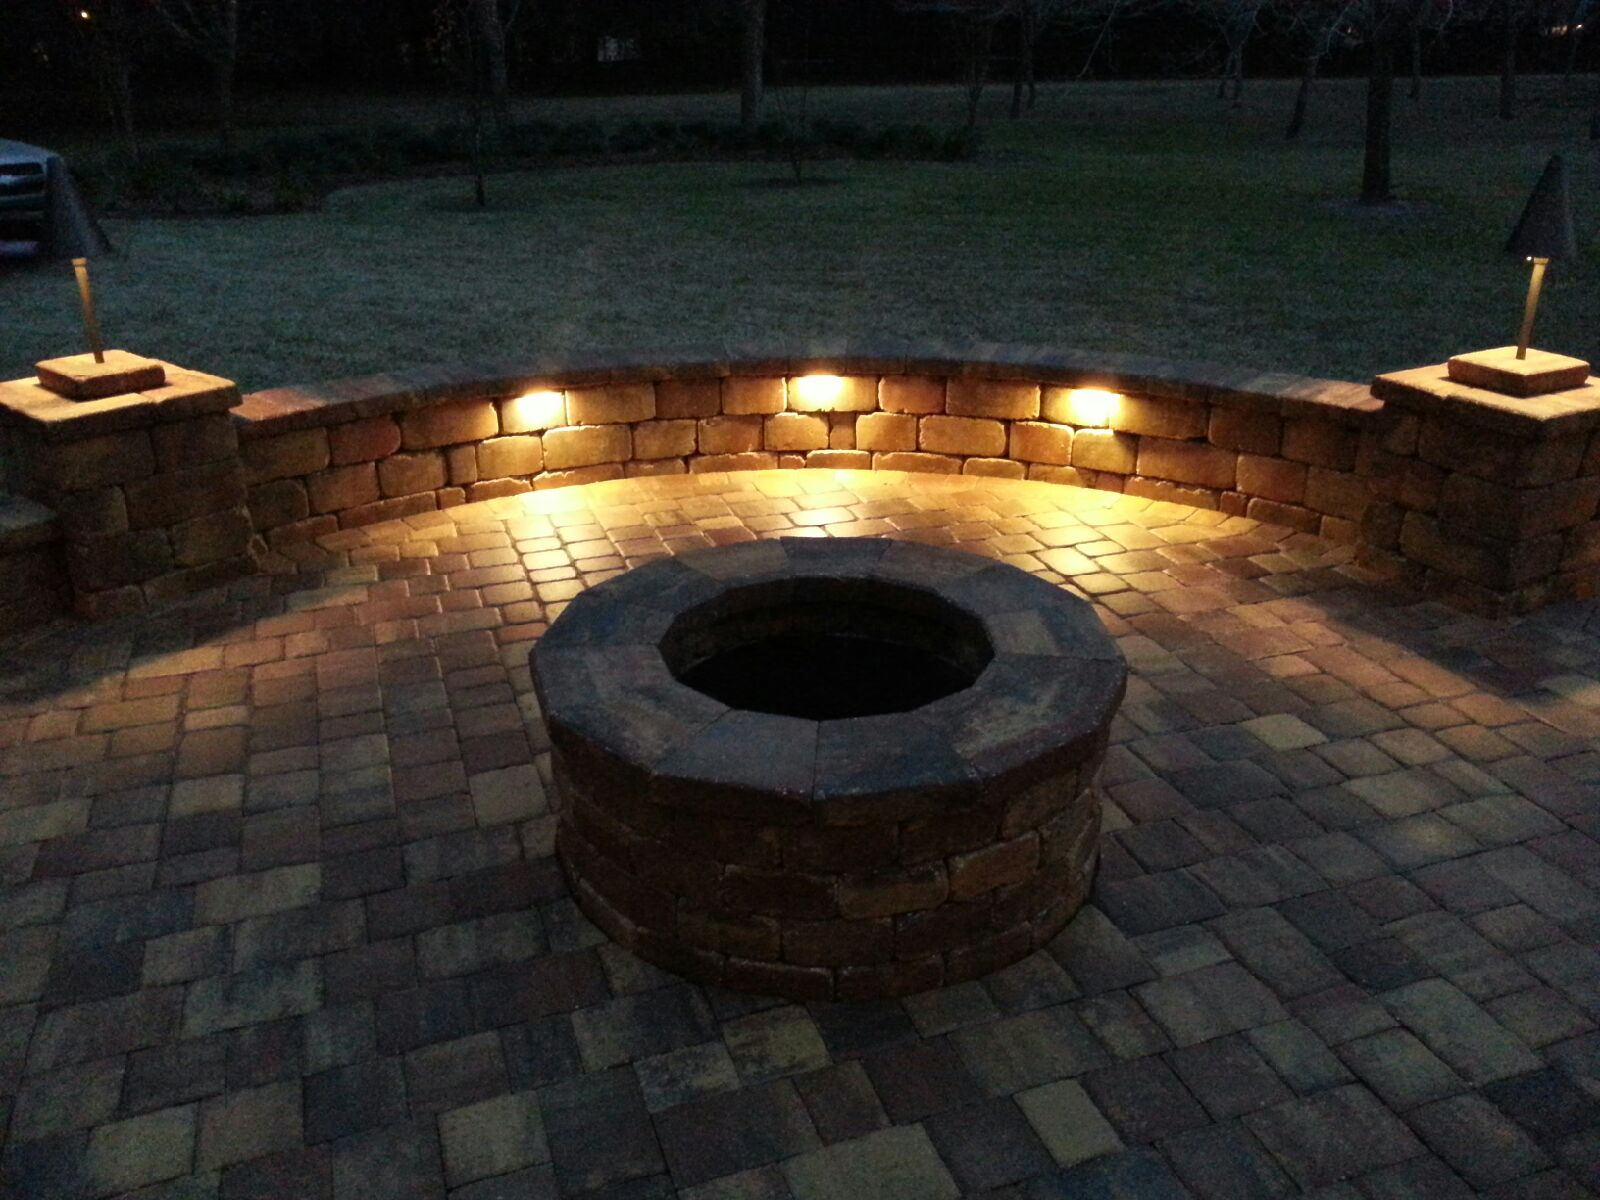 Concrete Paver Patio With Fire Pit And Wall Floridascapes